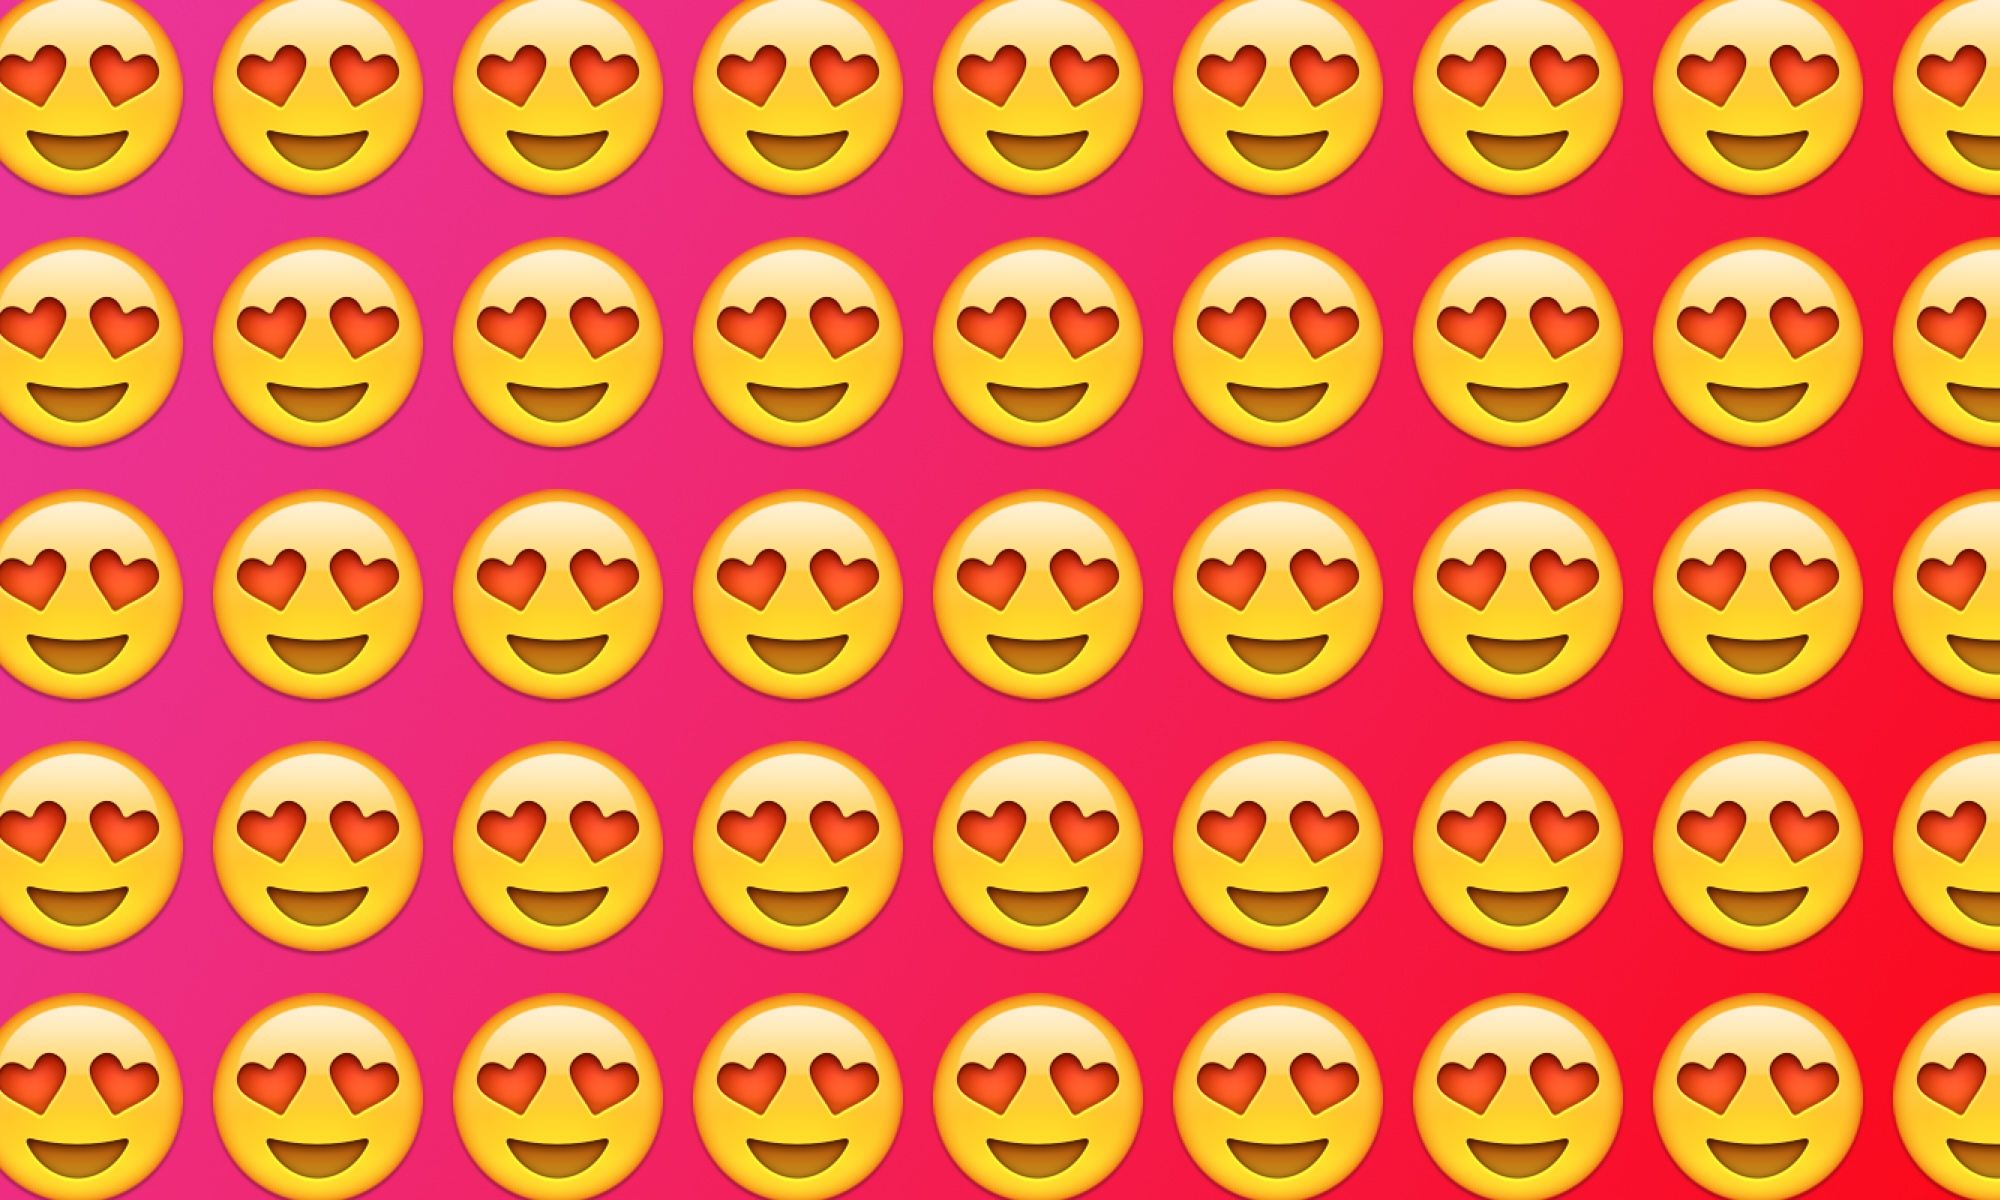 emojiology smiling face with heart eyes